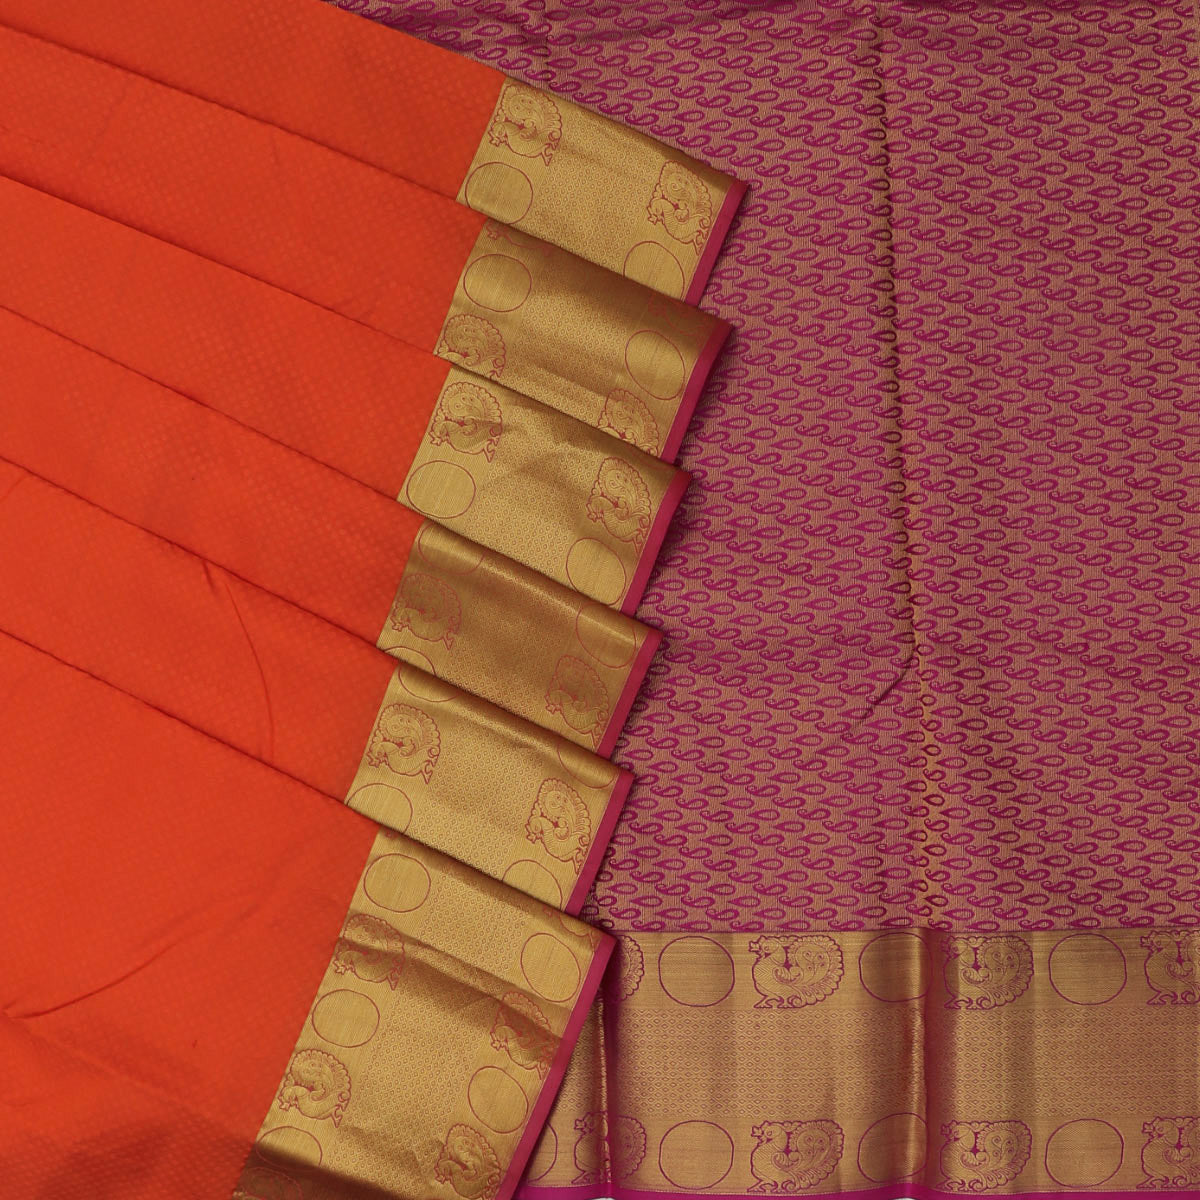 Kanjivaram Silk Saree orange with pink annam zari border for Rs.Rs. 6080.00 | Silk Sarees by Prashanti Sarees